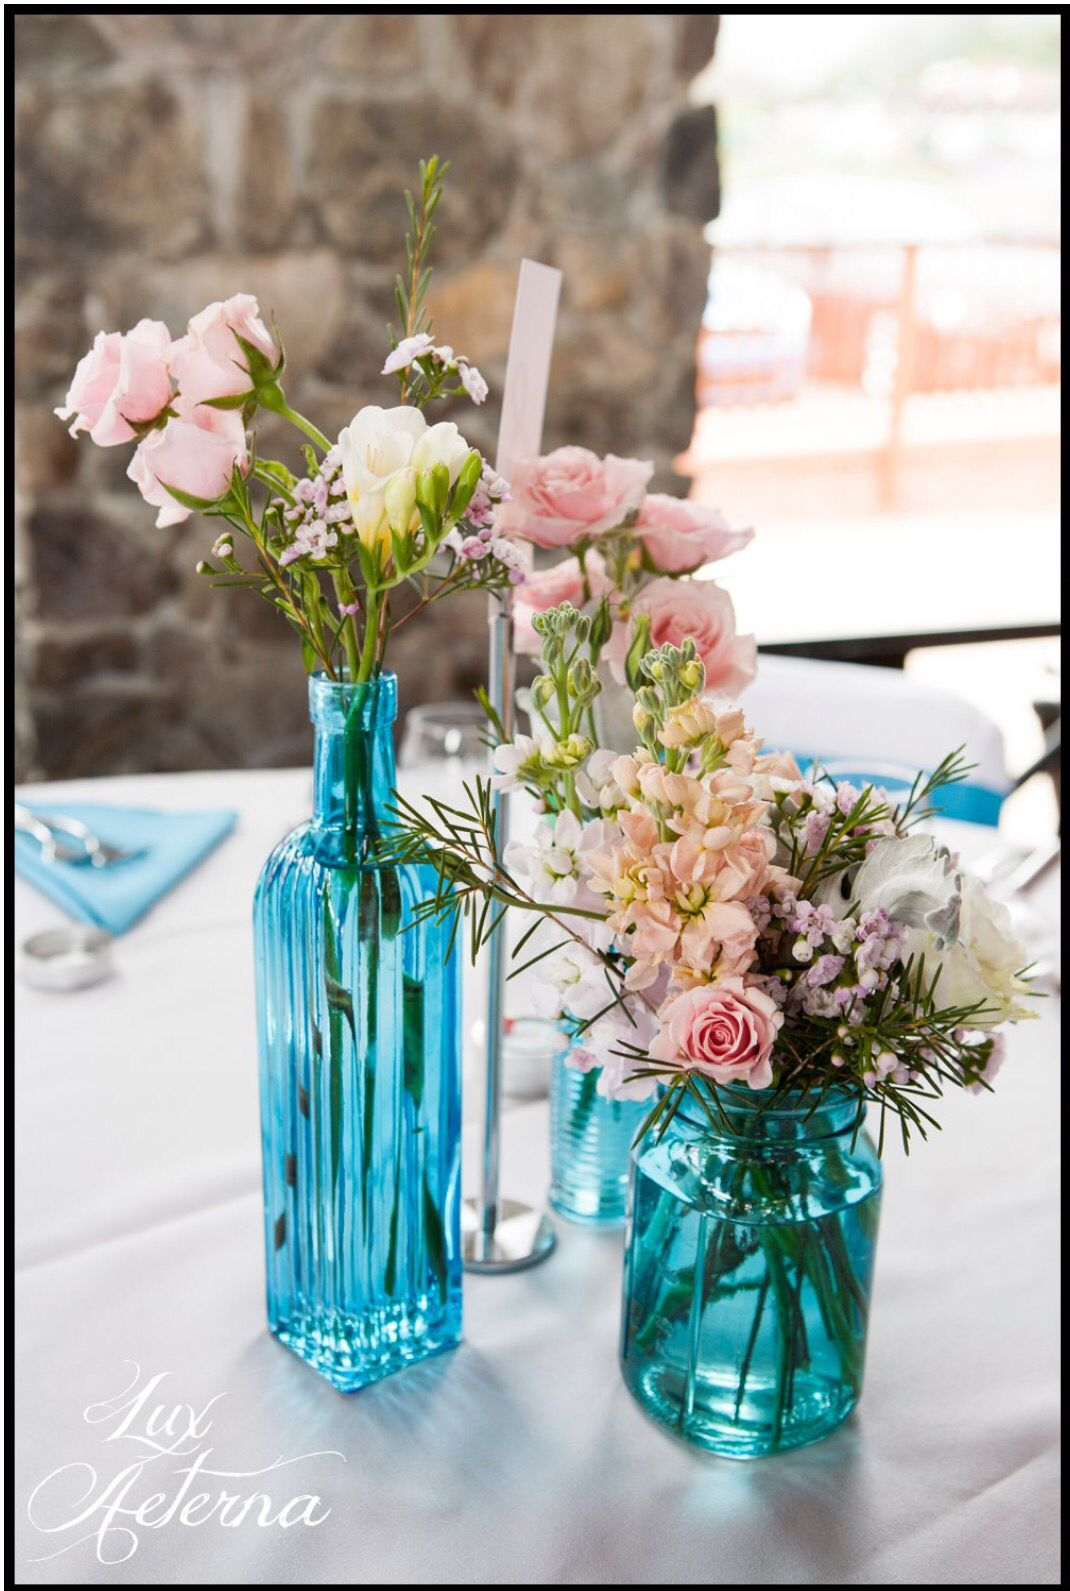 Blue bud vase centerpieces with blush flowers a love story blue bud vase centerpieces with blush flowers reviewsmspy